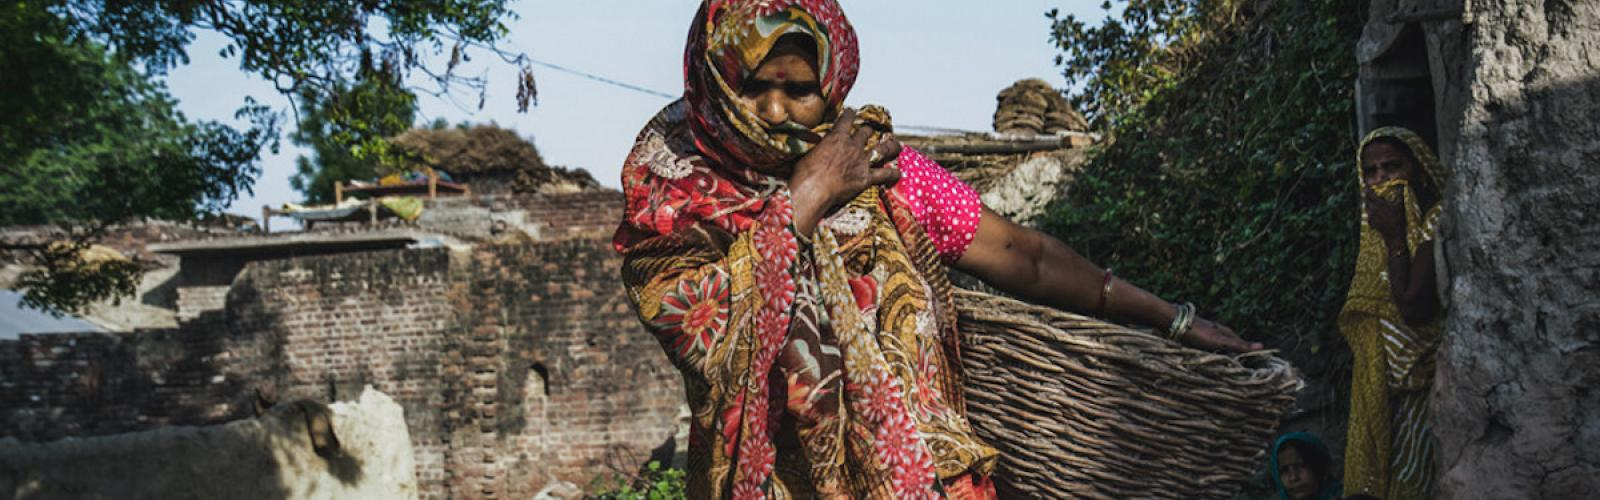 A woman in India covers her face during the coronavirus pandemic